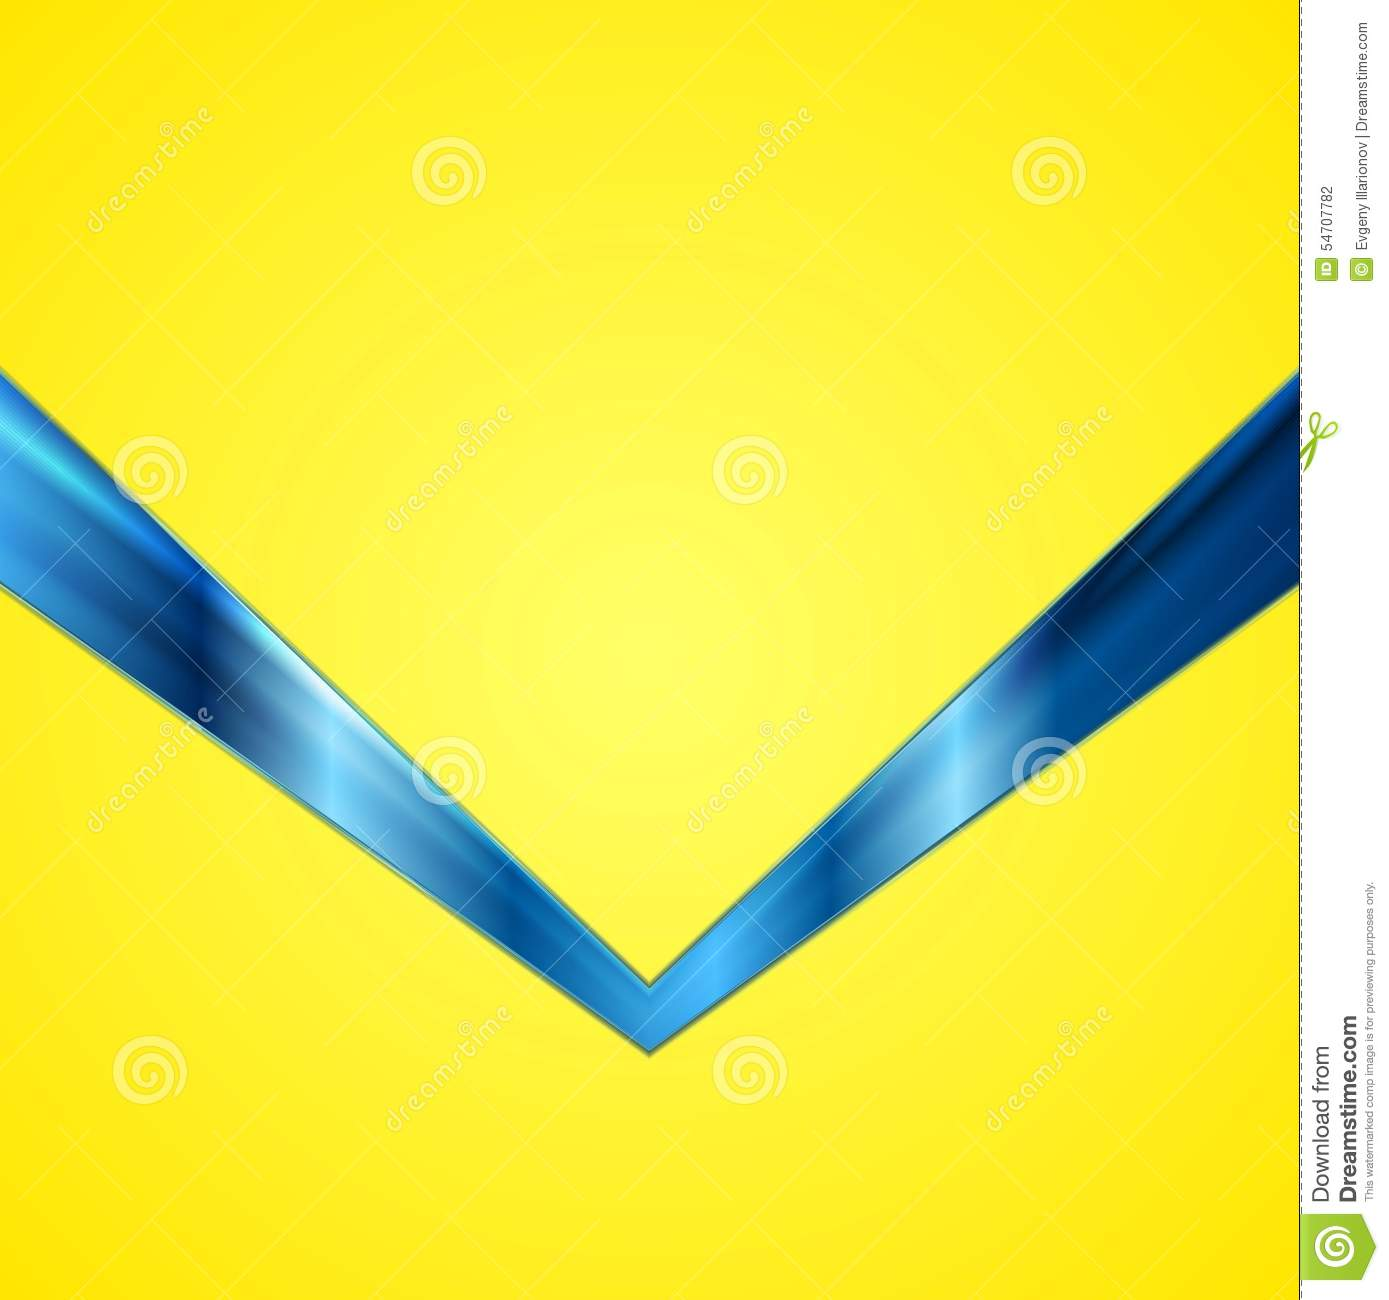 abstract contrast yellow blue tech background stock vector